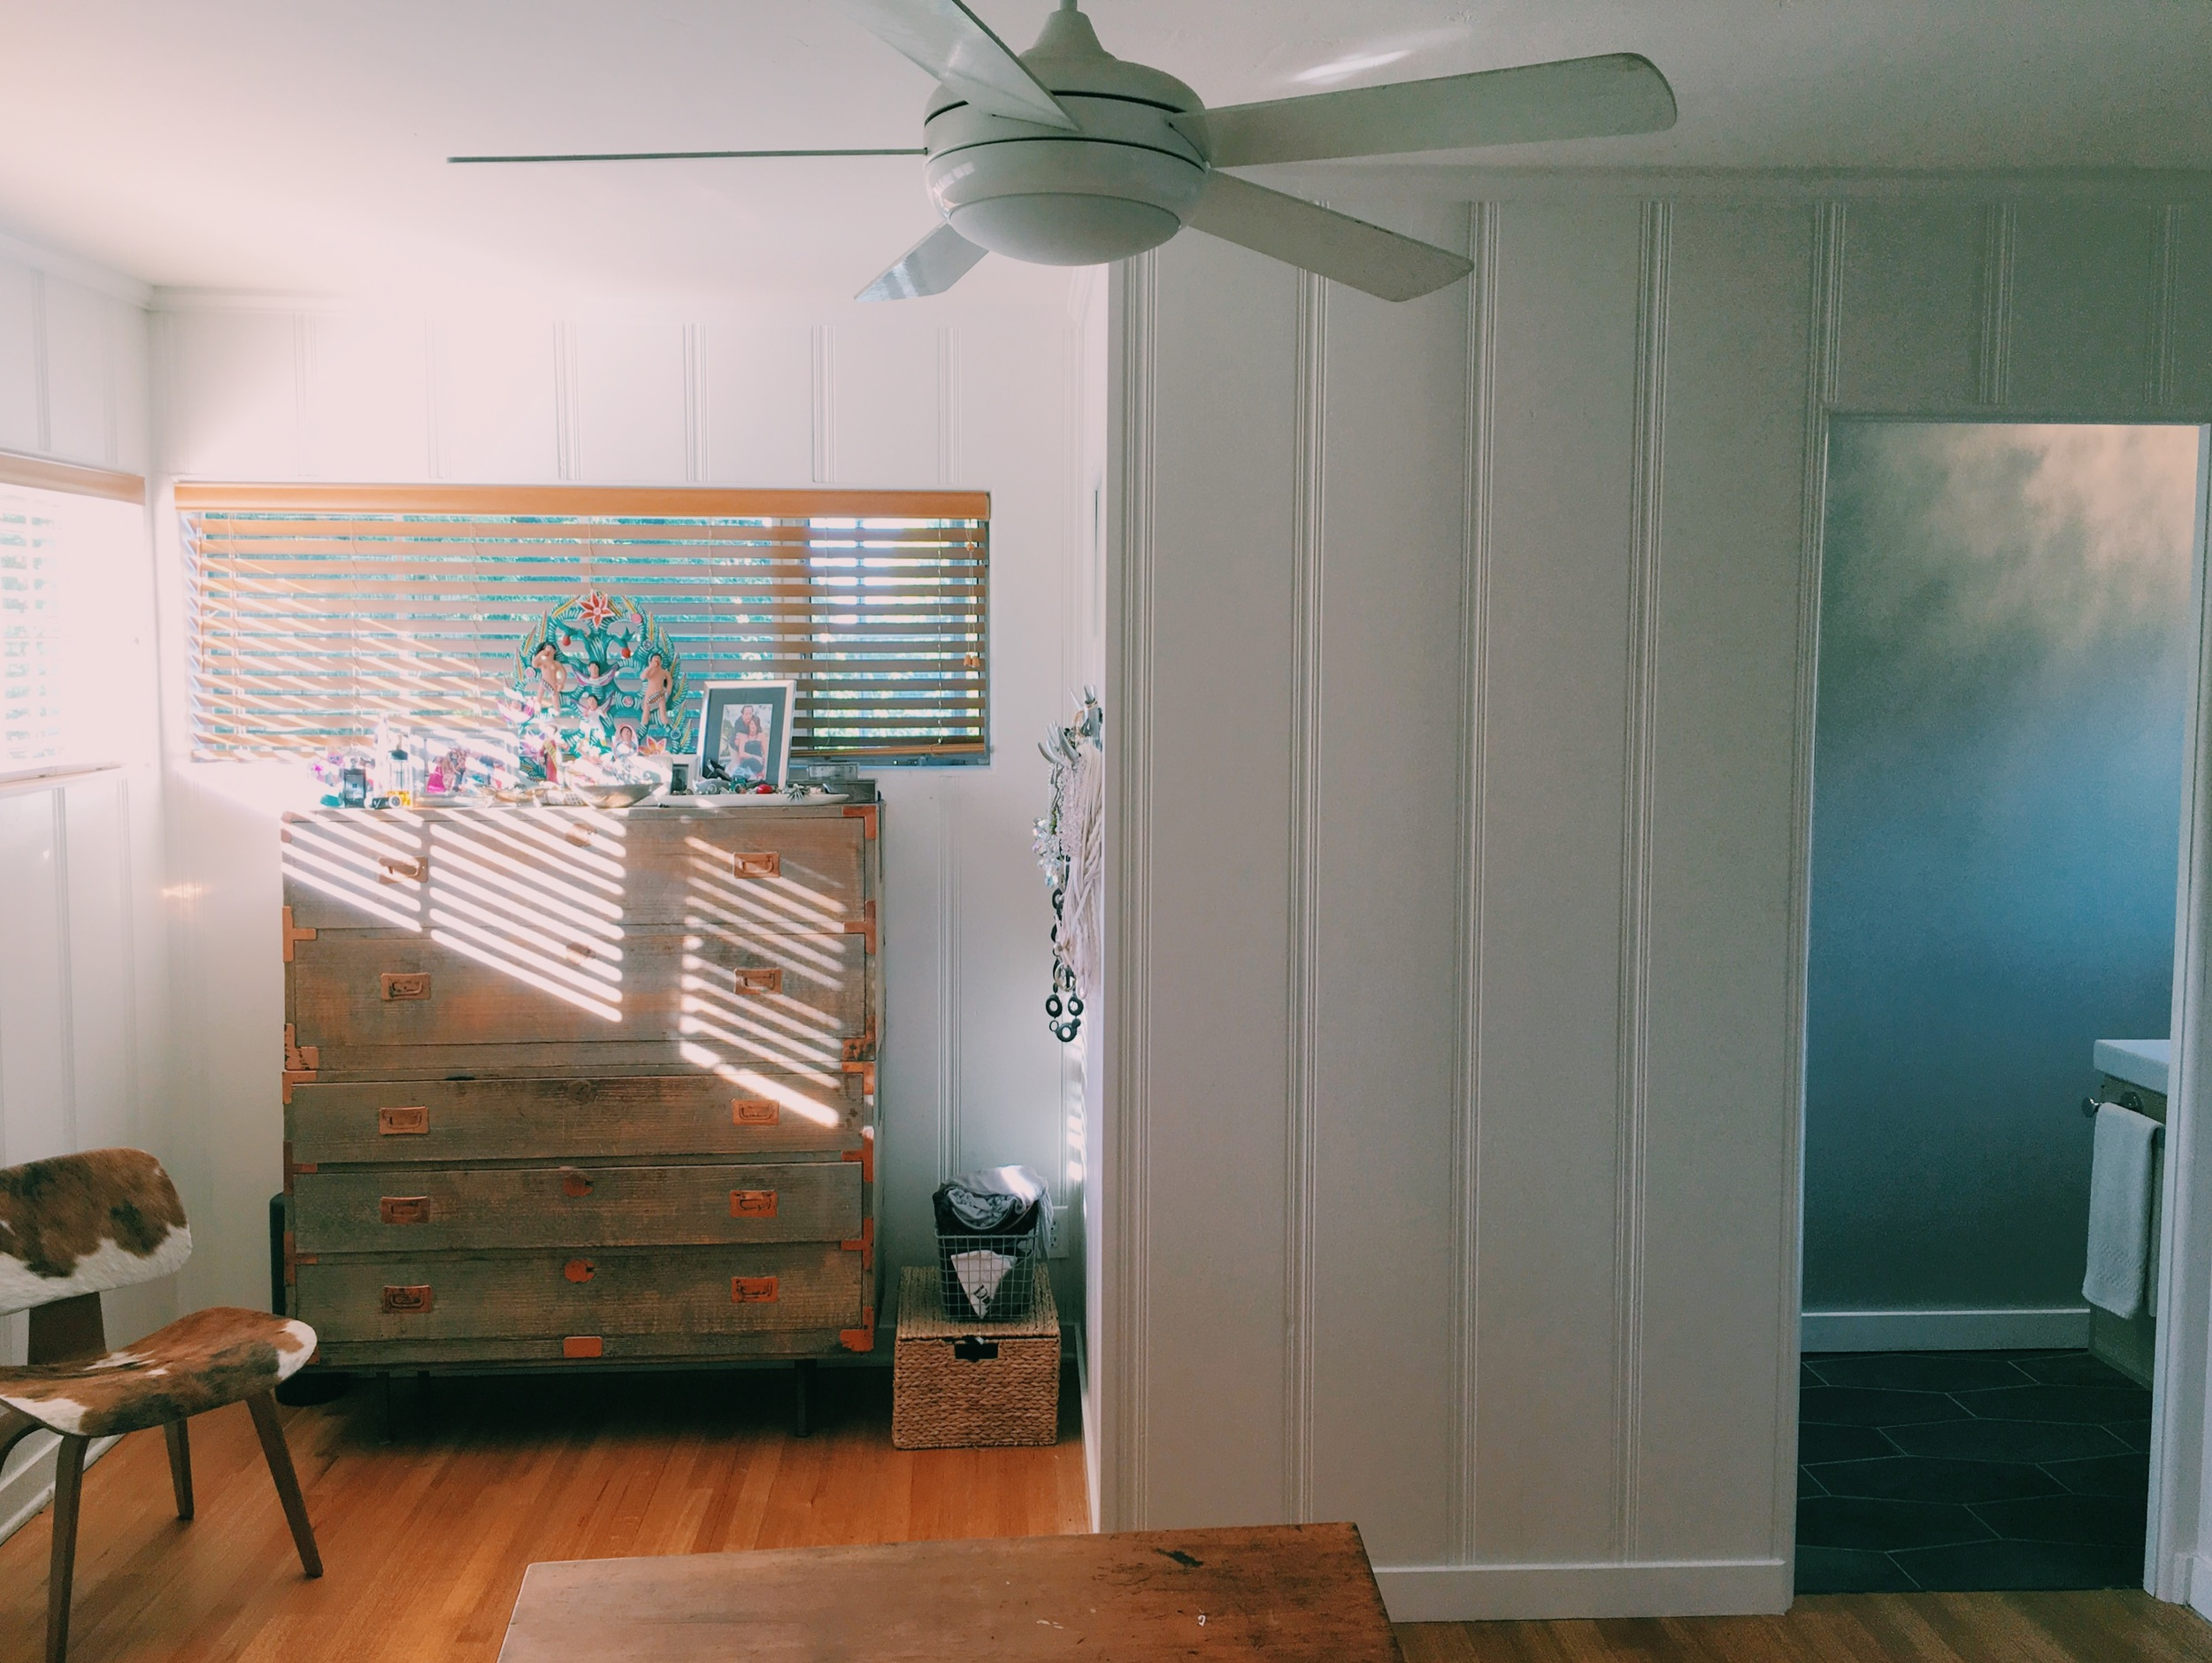 Here's the whole wall so you can see the space it takes up in the room. It actually makes a cozy spot for my dresser.